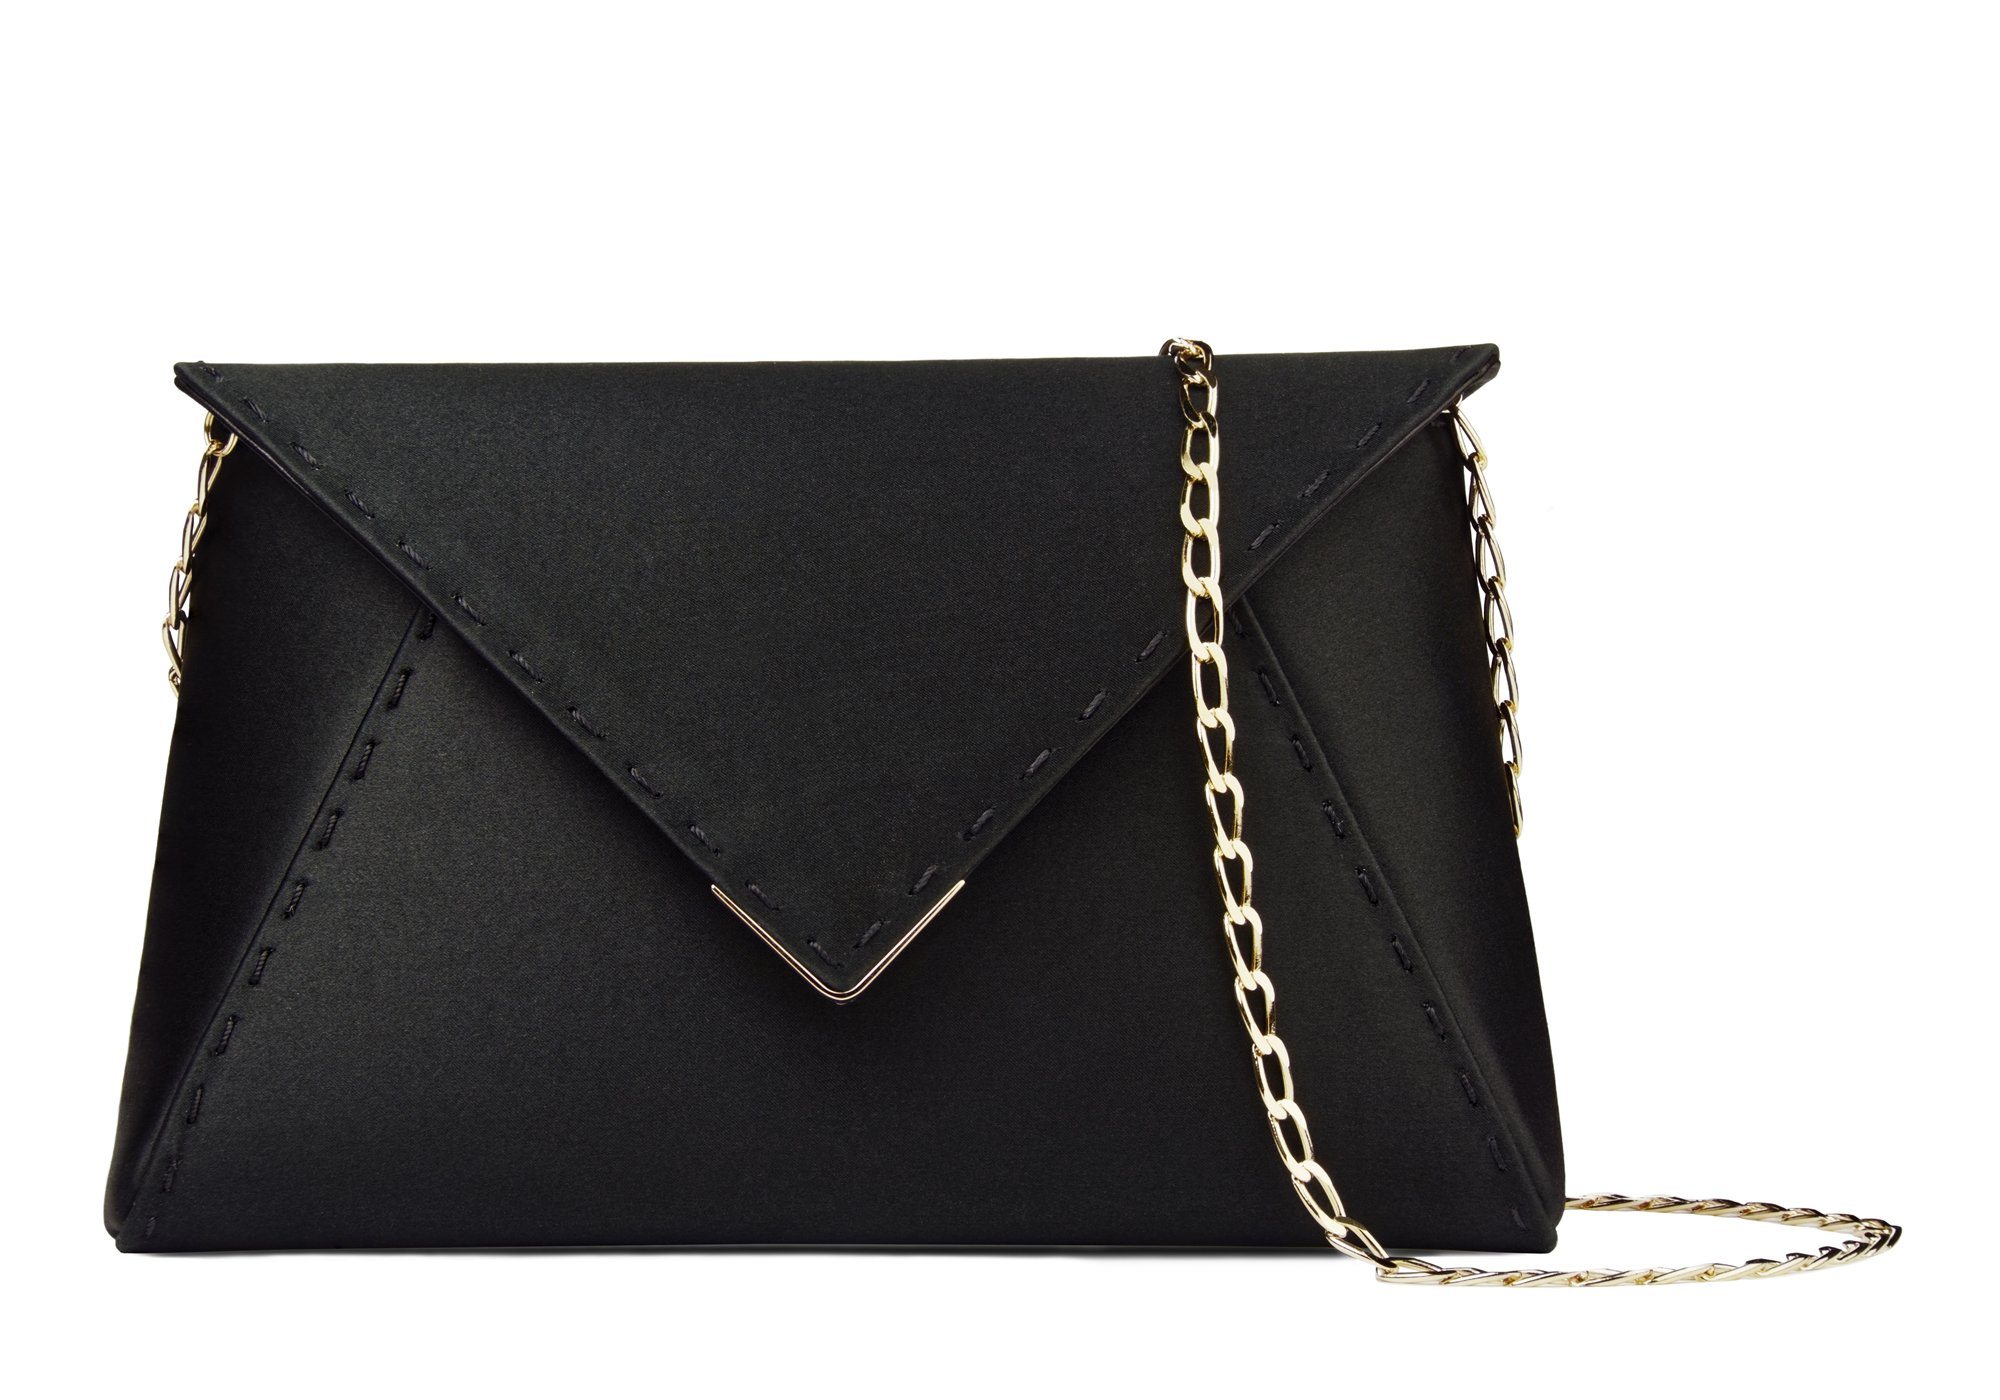 Lee Pouchet Small by Tyler Ellis, available on tylerellis.com for $1200 Hailey Baldwin Bags Exact Product